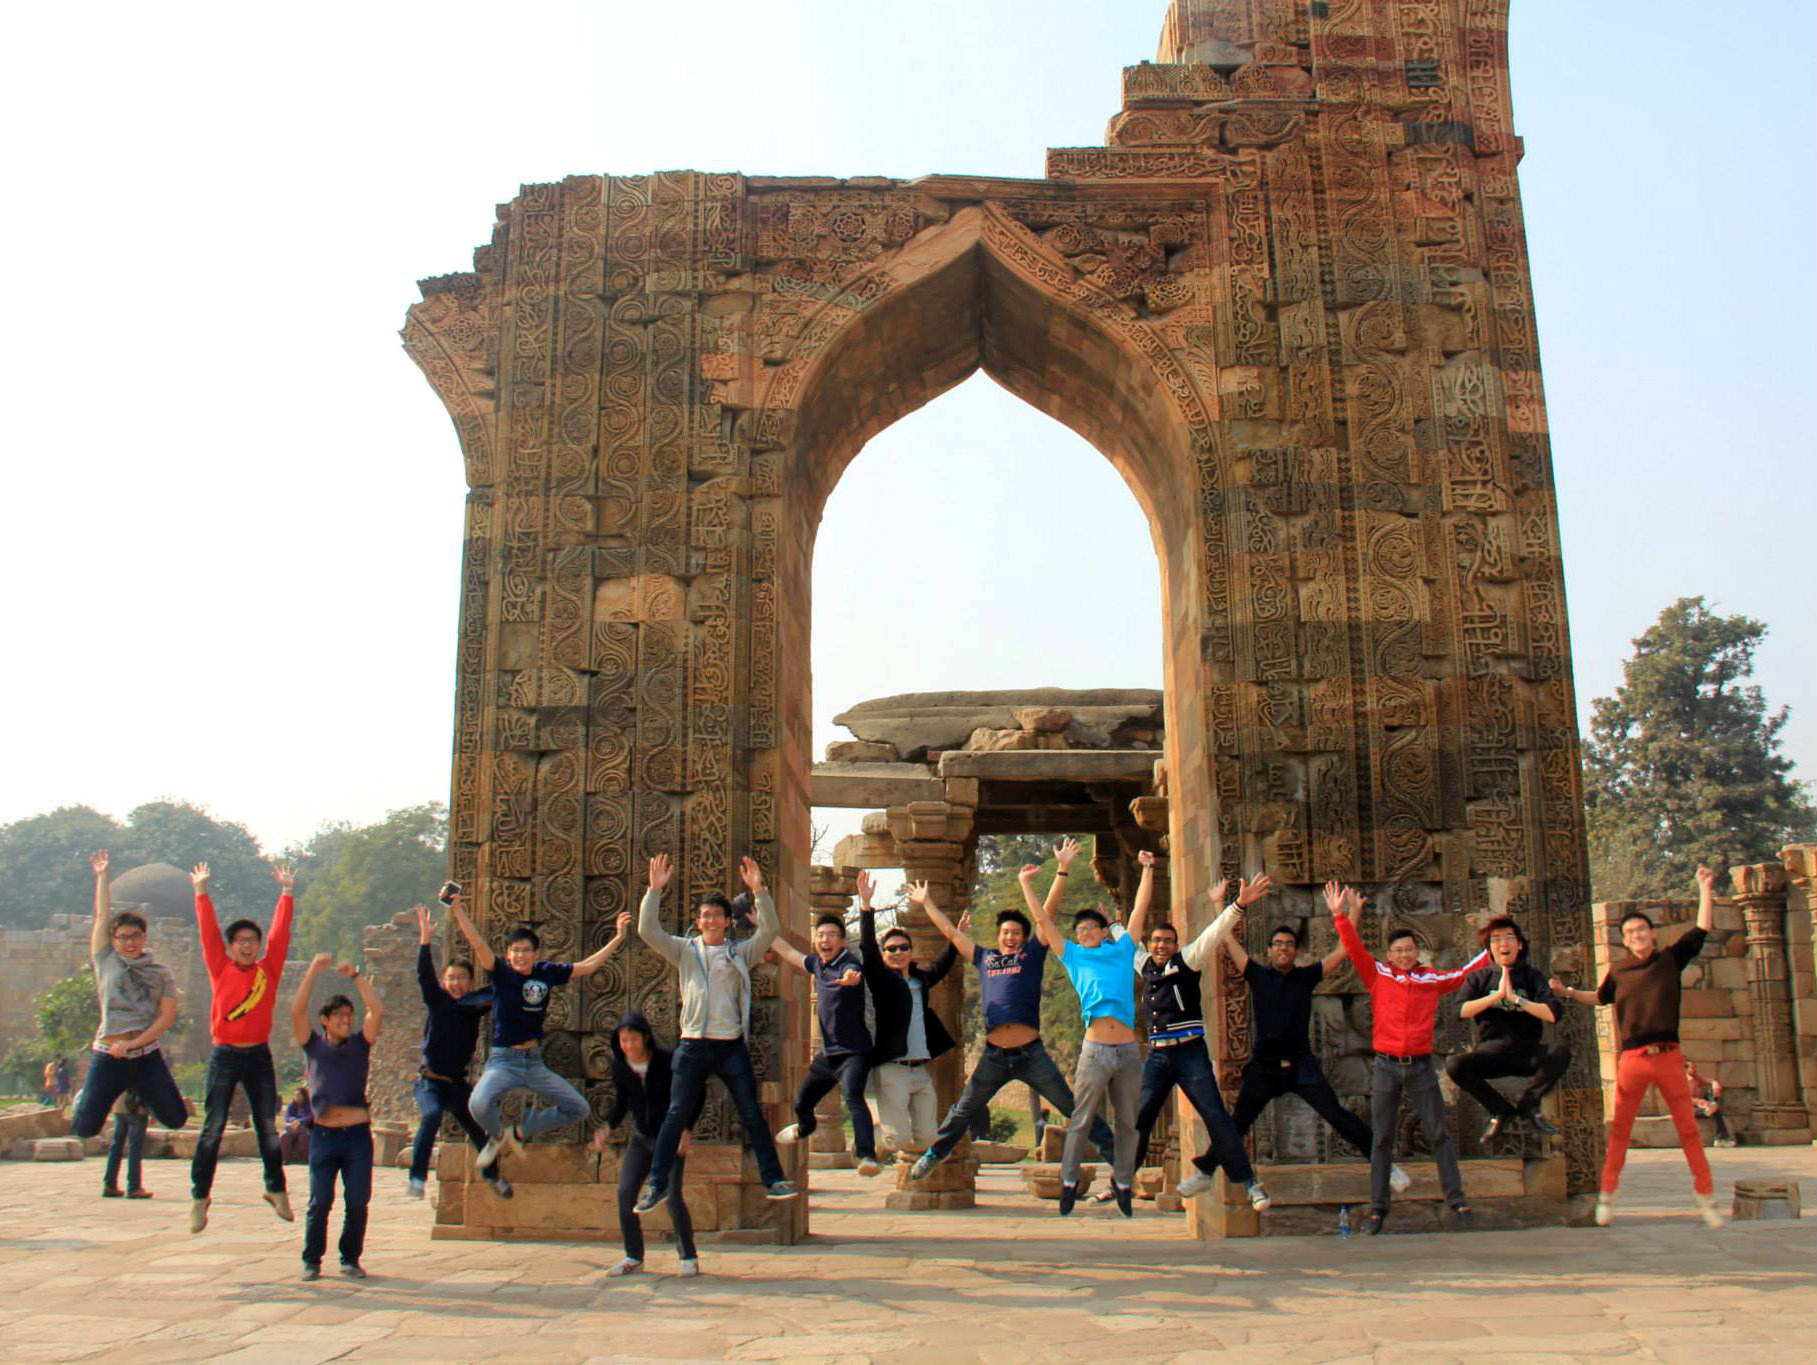 A trip to India: An Accounting Study Mission